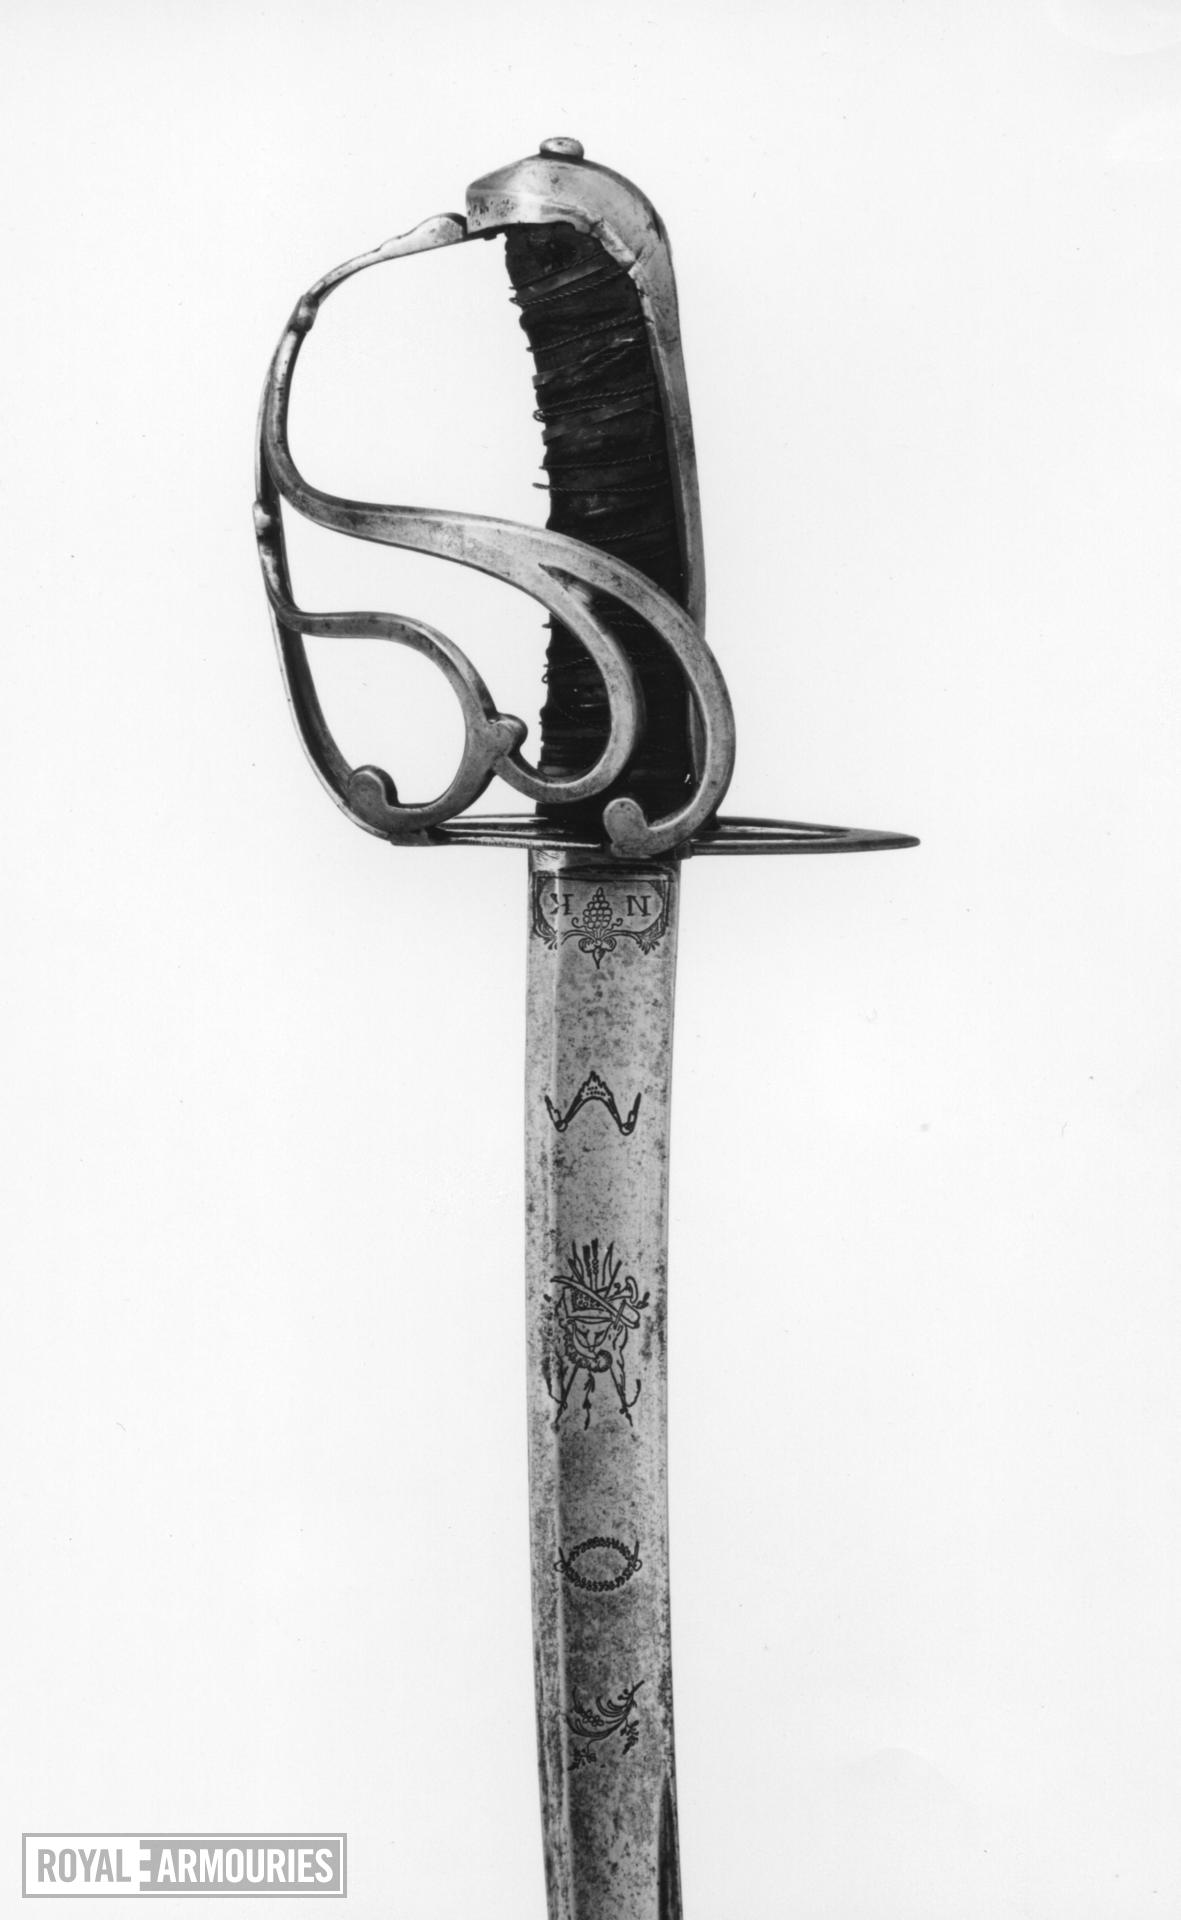 Sword sword, probably Gardes Francaises, post 1782.